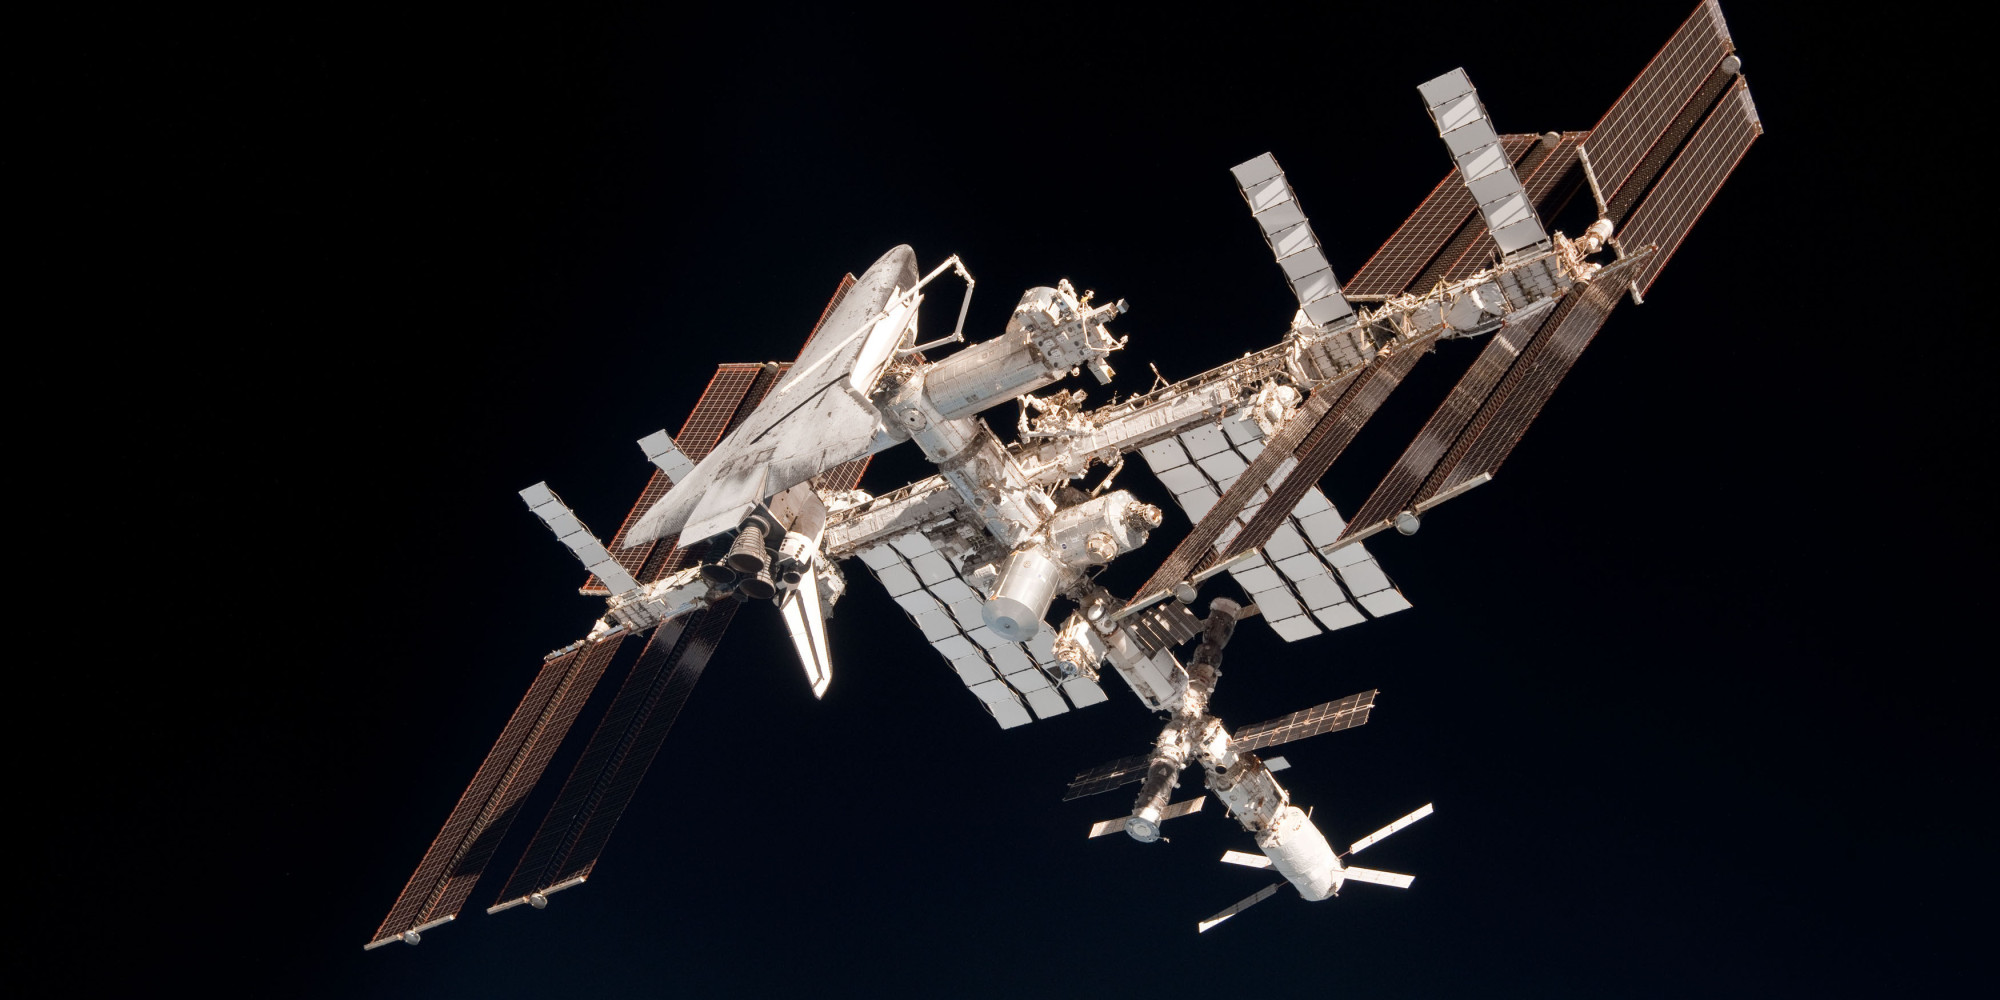 space shuttle to iss - photo #4